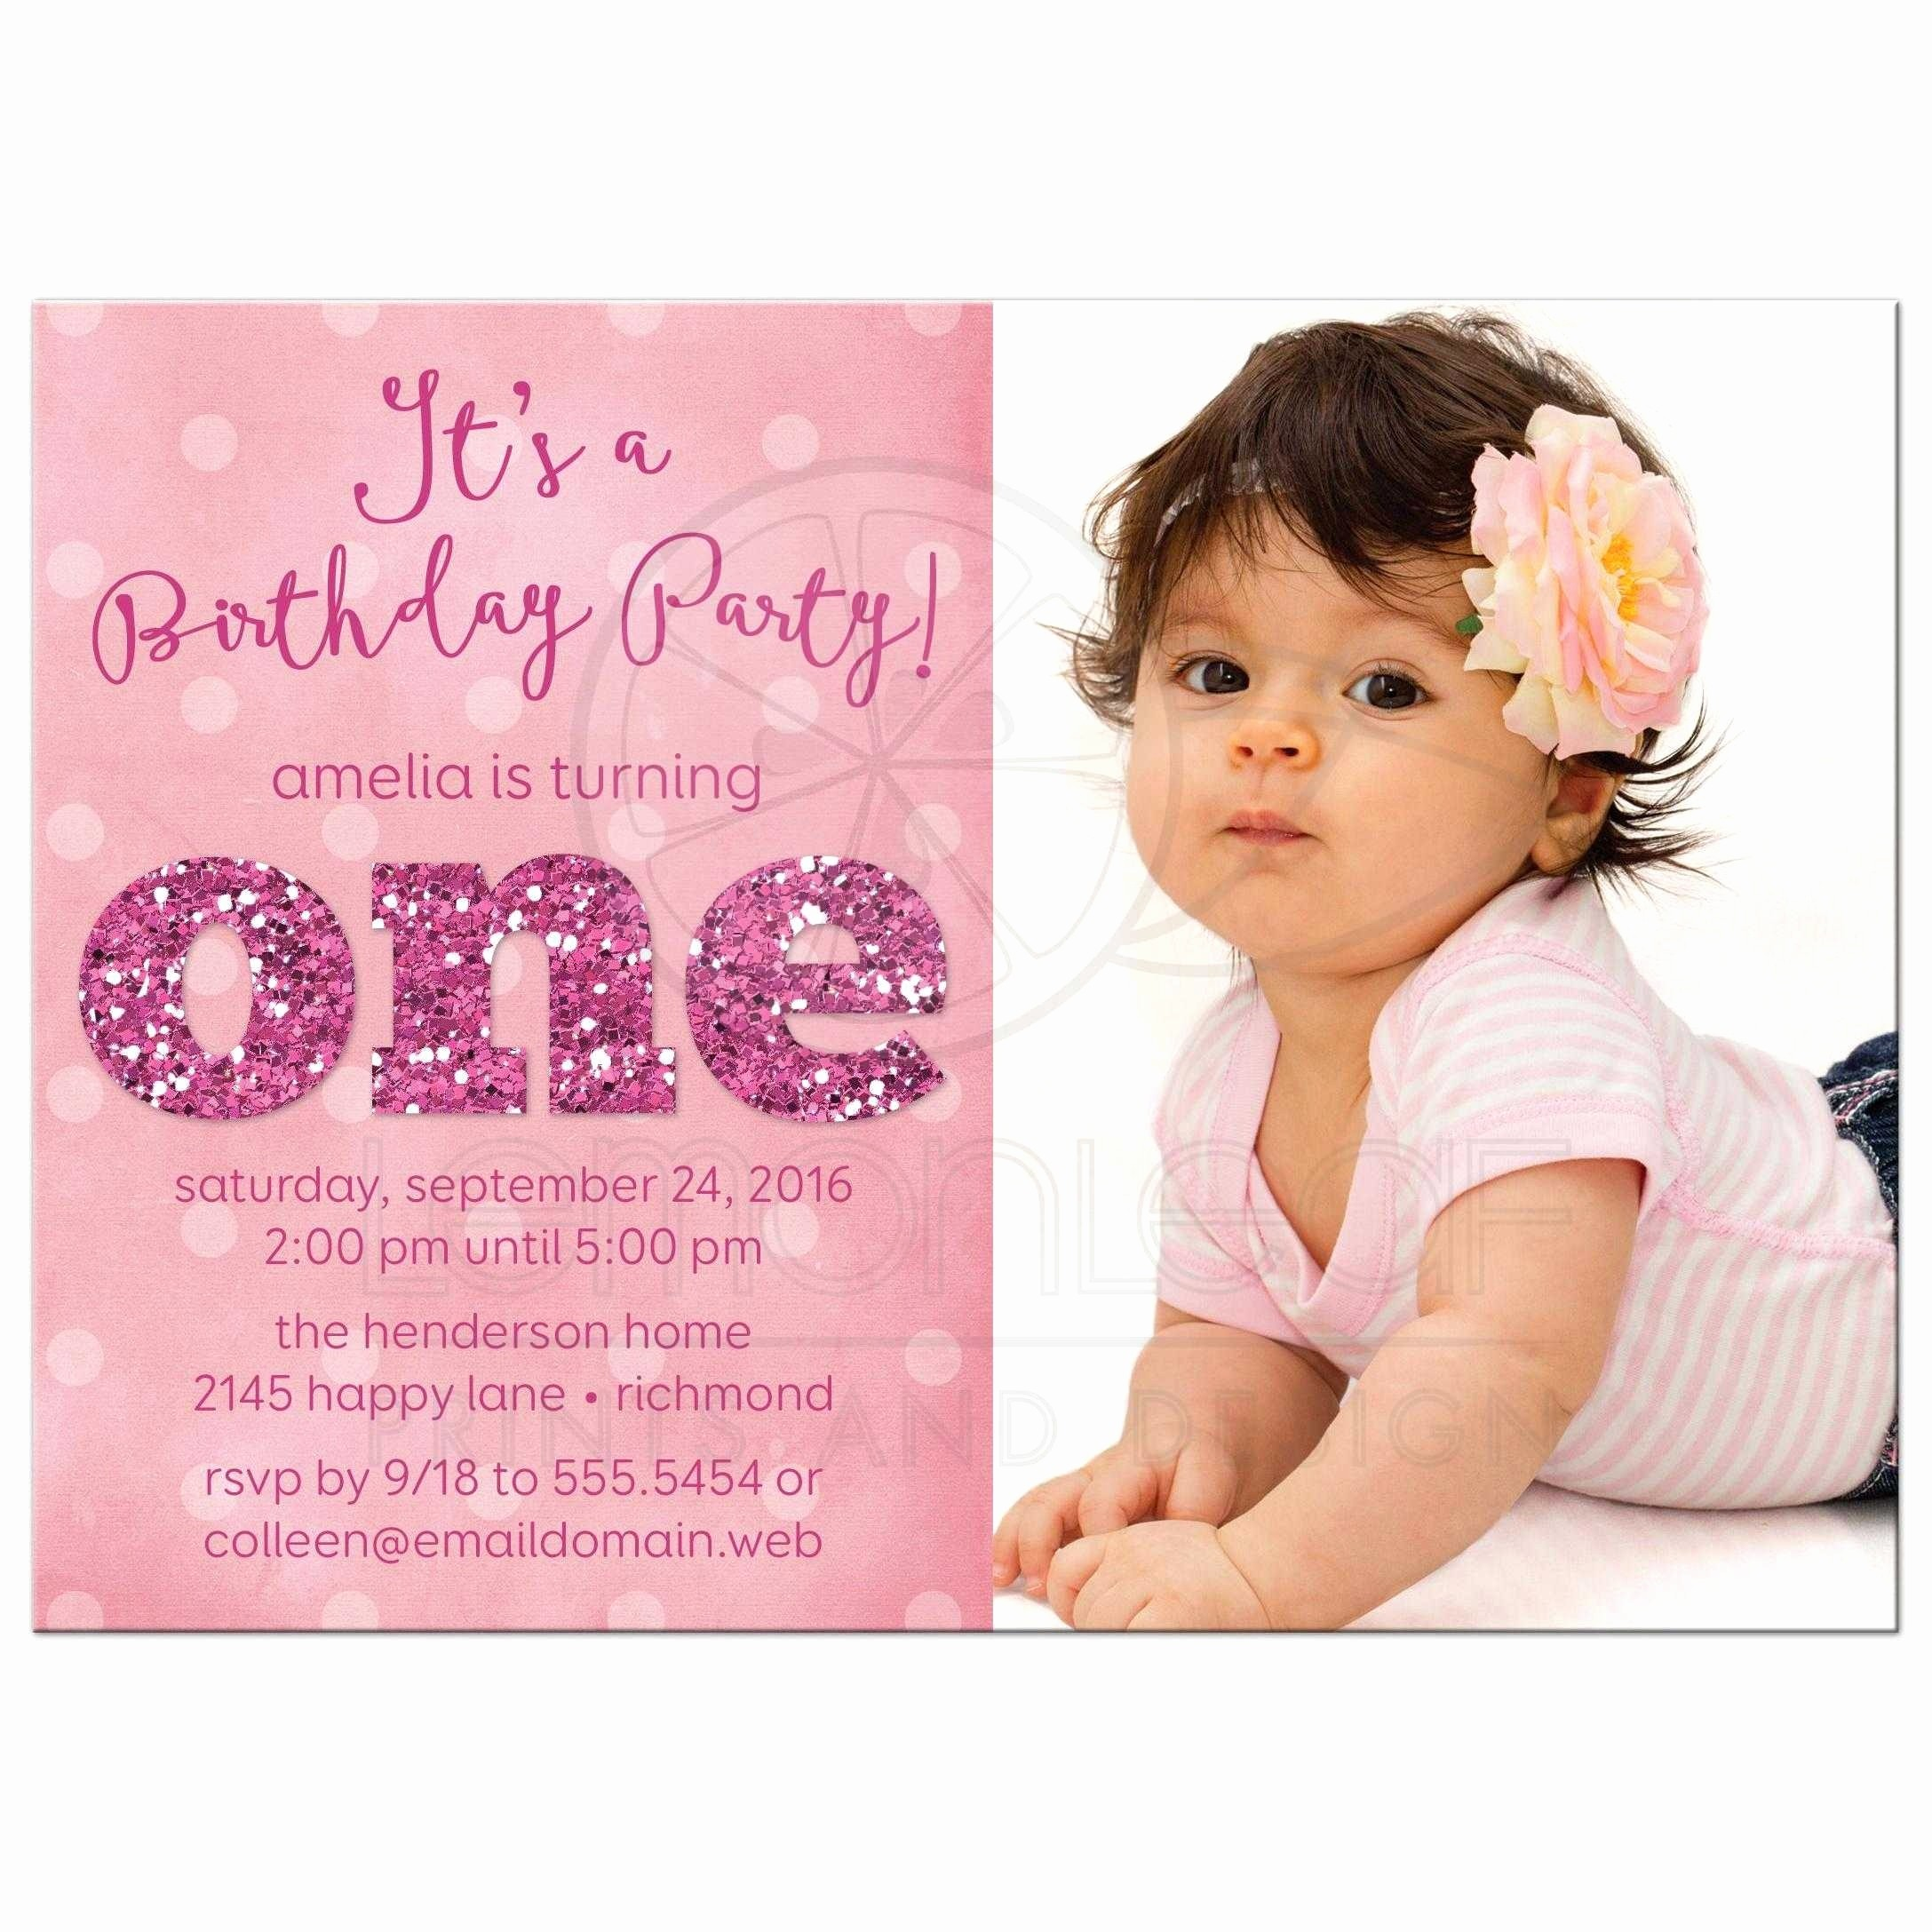 first birthday invitation letter ; sample-invitation-letter-for-first-birthday-party-fresh-first-birthday-invitation-card-template-elegant-birthday-invites-of-sample-invitation-letter-for-first-birthday-party